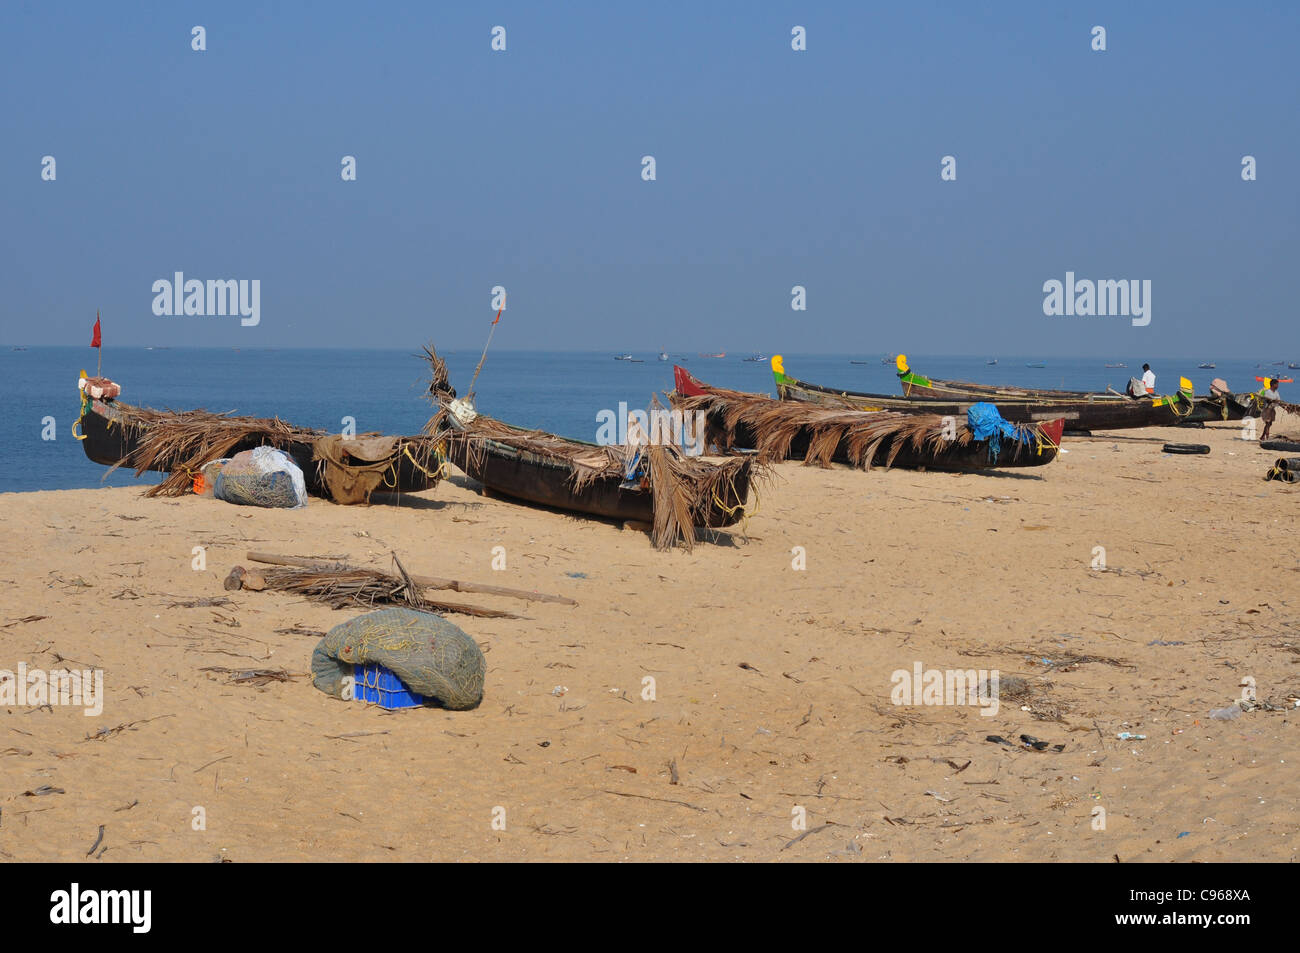 wooden country fishing boats parked on the beach - Stock Image